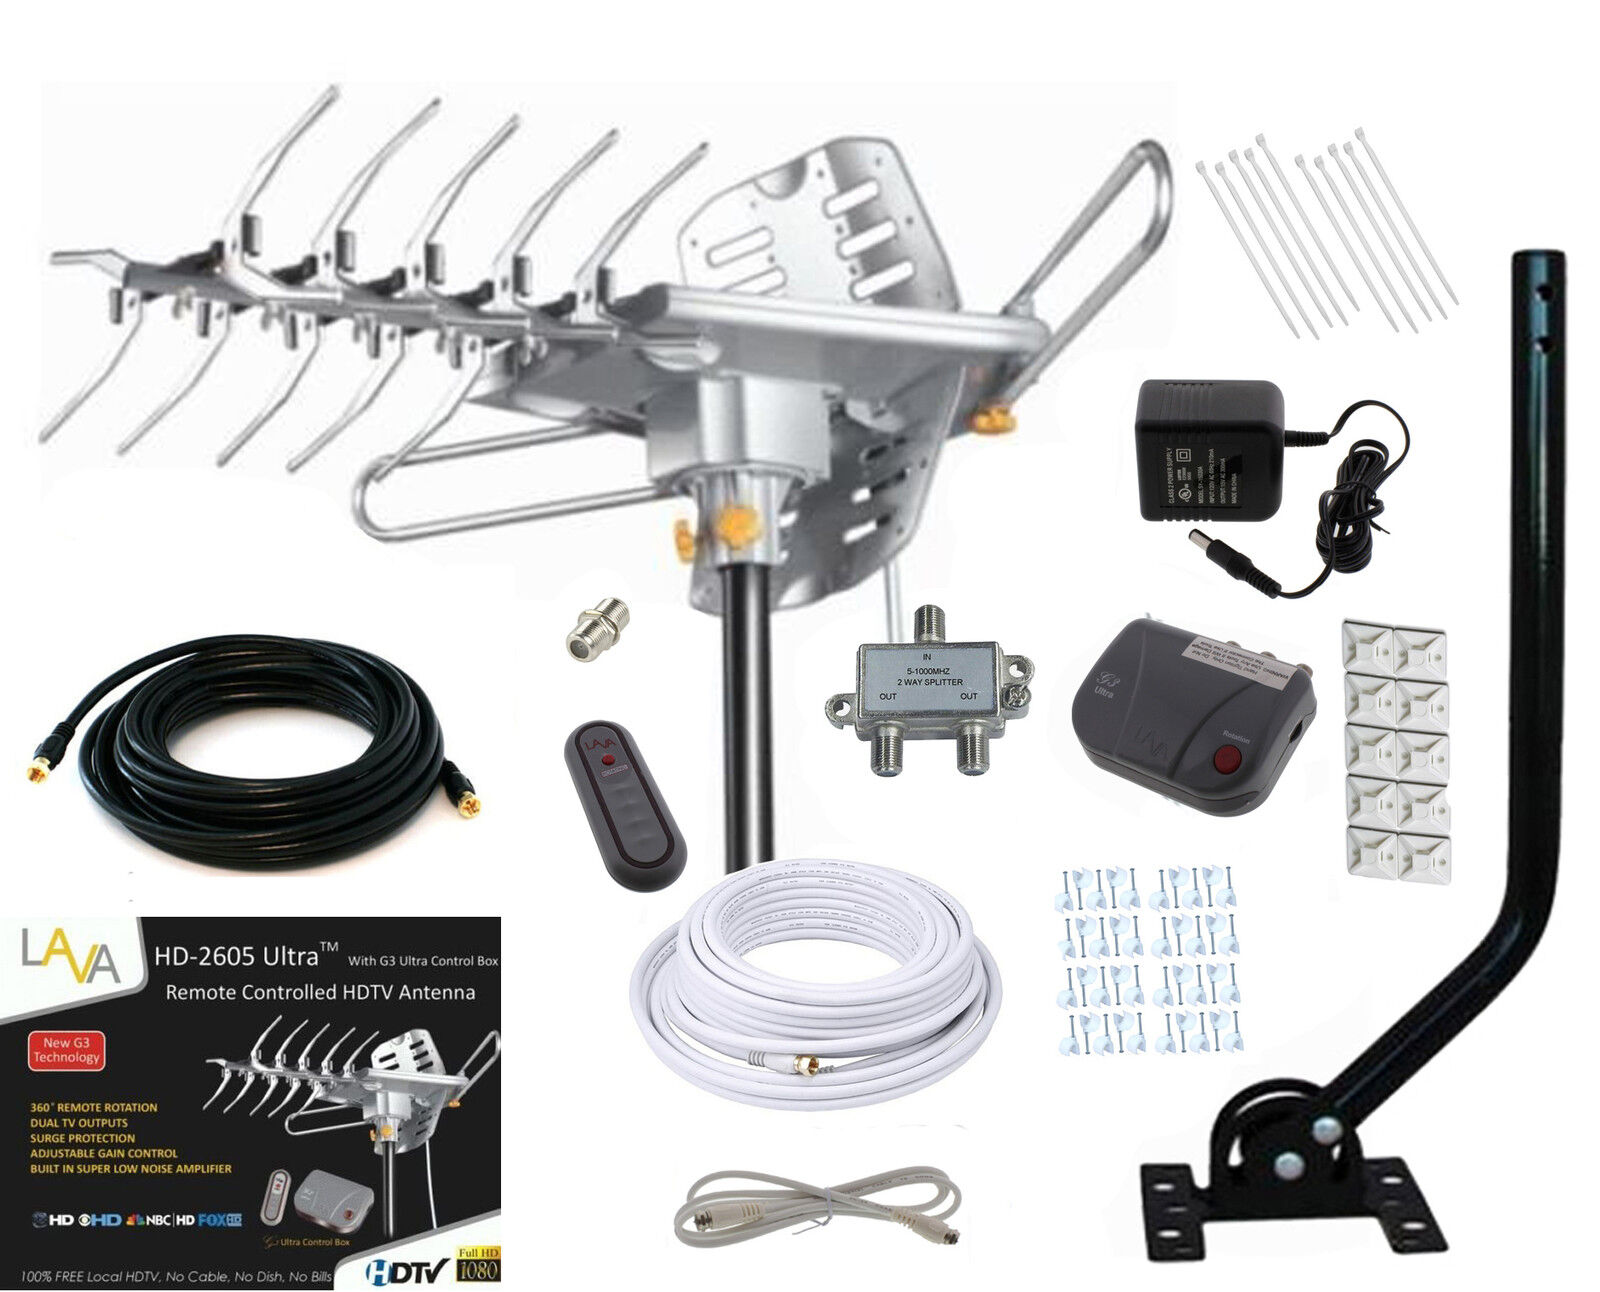 LAVA HD2605 HDTV DIGITAL ROTOR AMPLIFIED OUTDOOR HD TV ANTENNA CABLE J-POLE. Available Now for 99.90